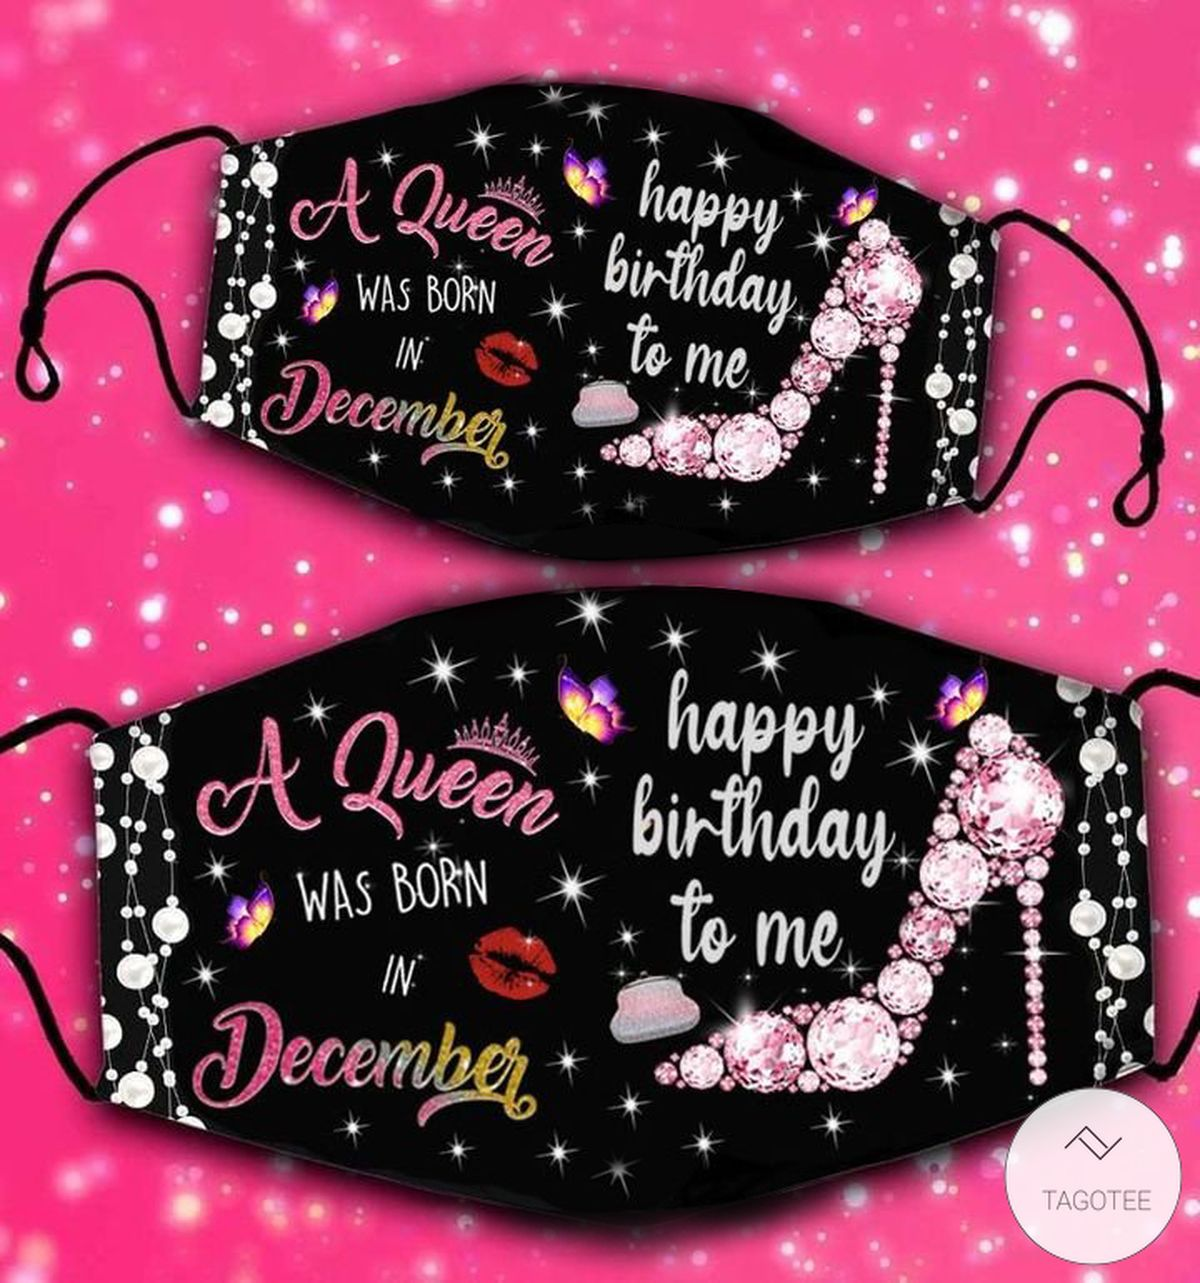 A Queen Was Born In December Happy Birthday To Me Face Mask